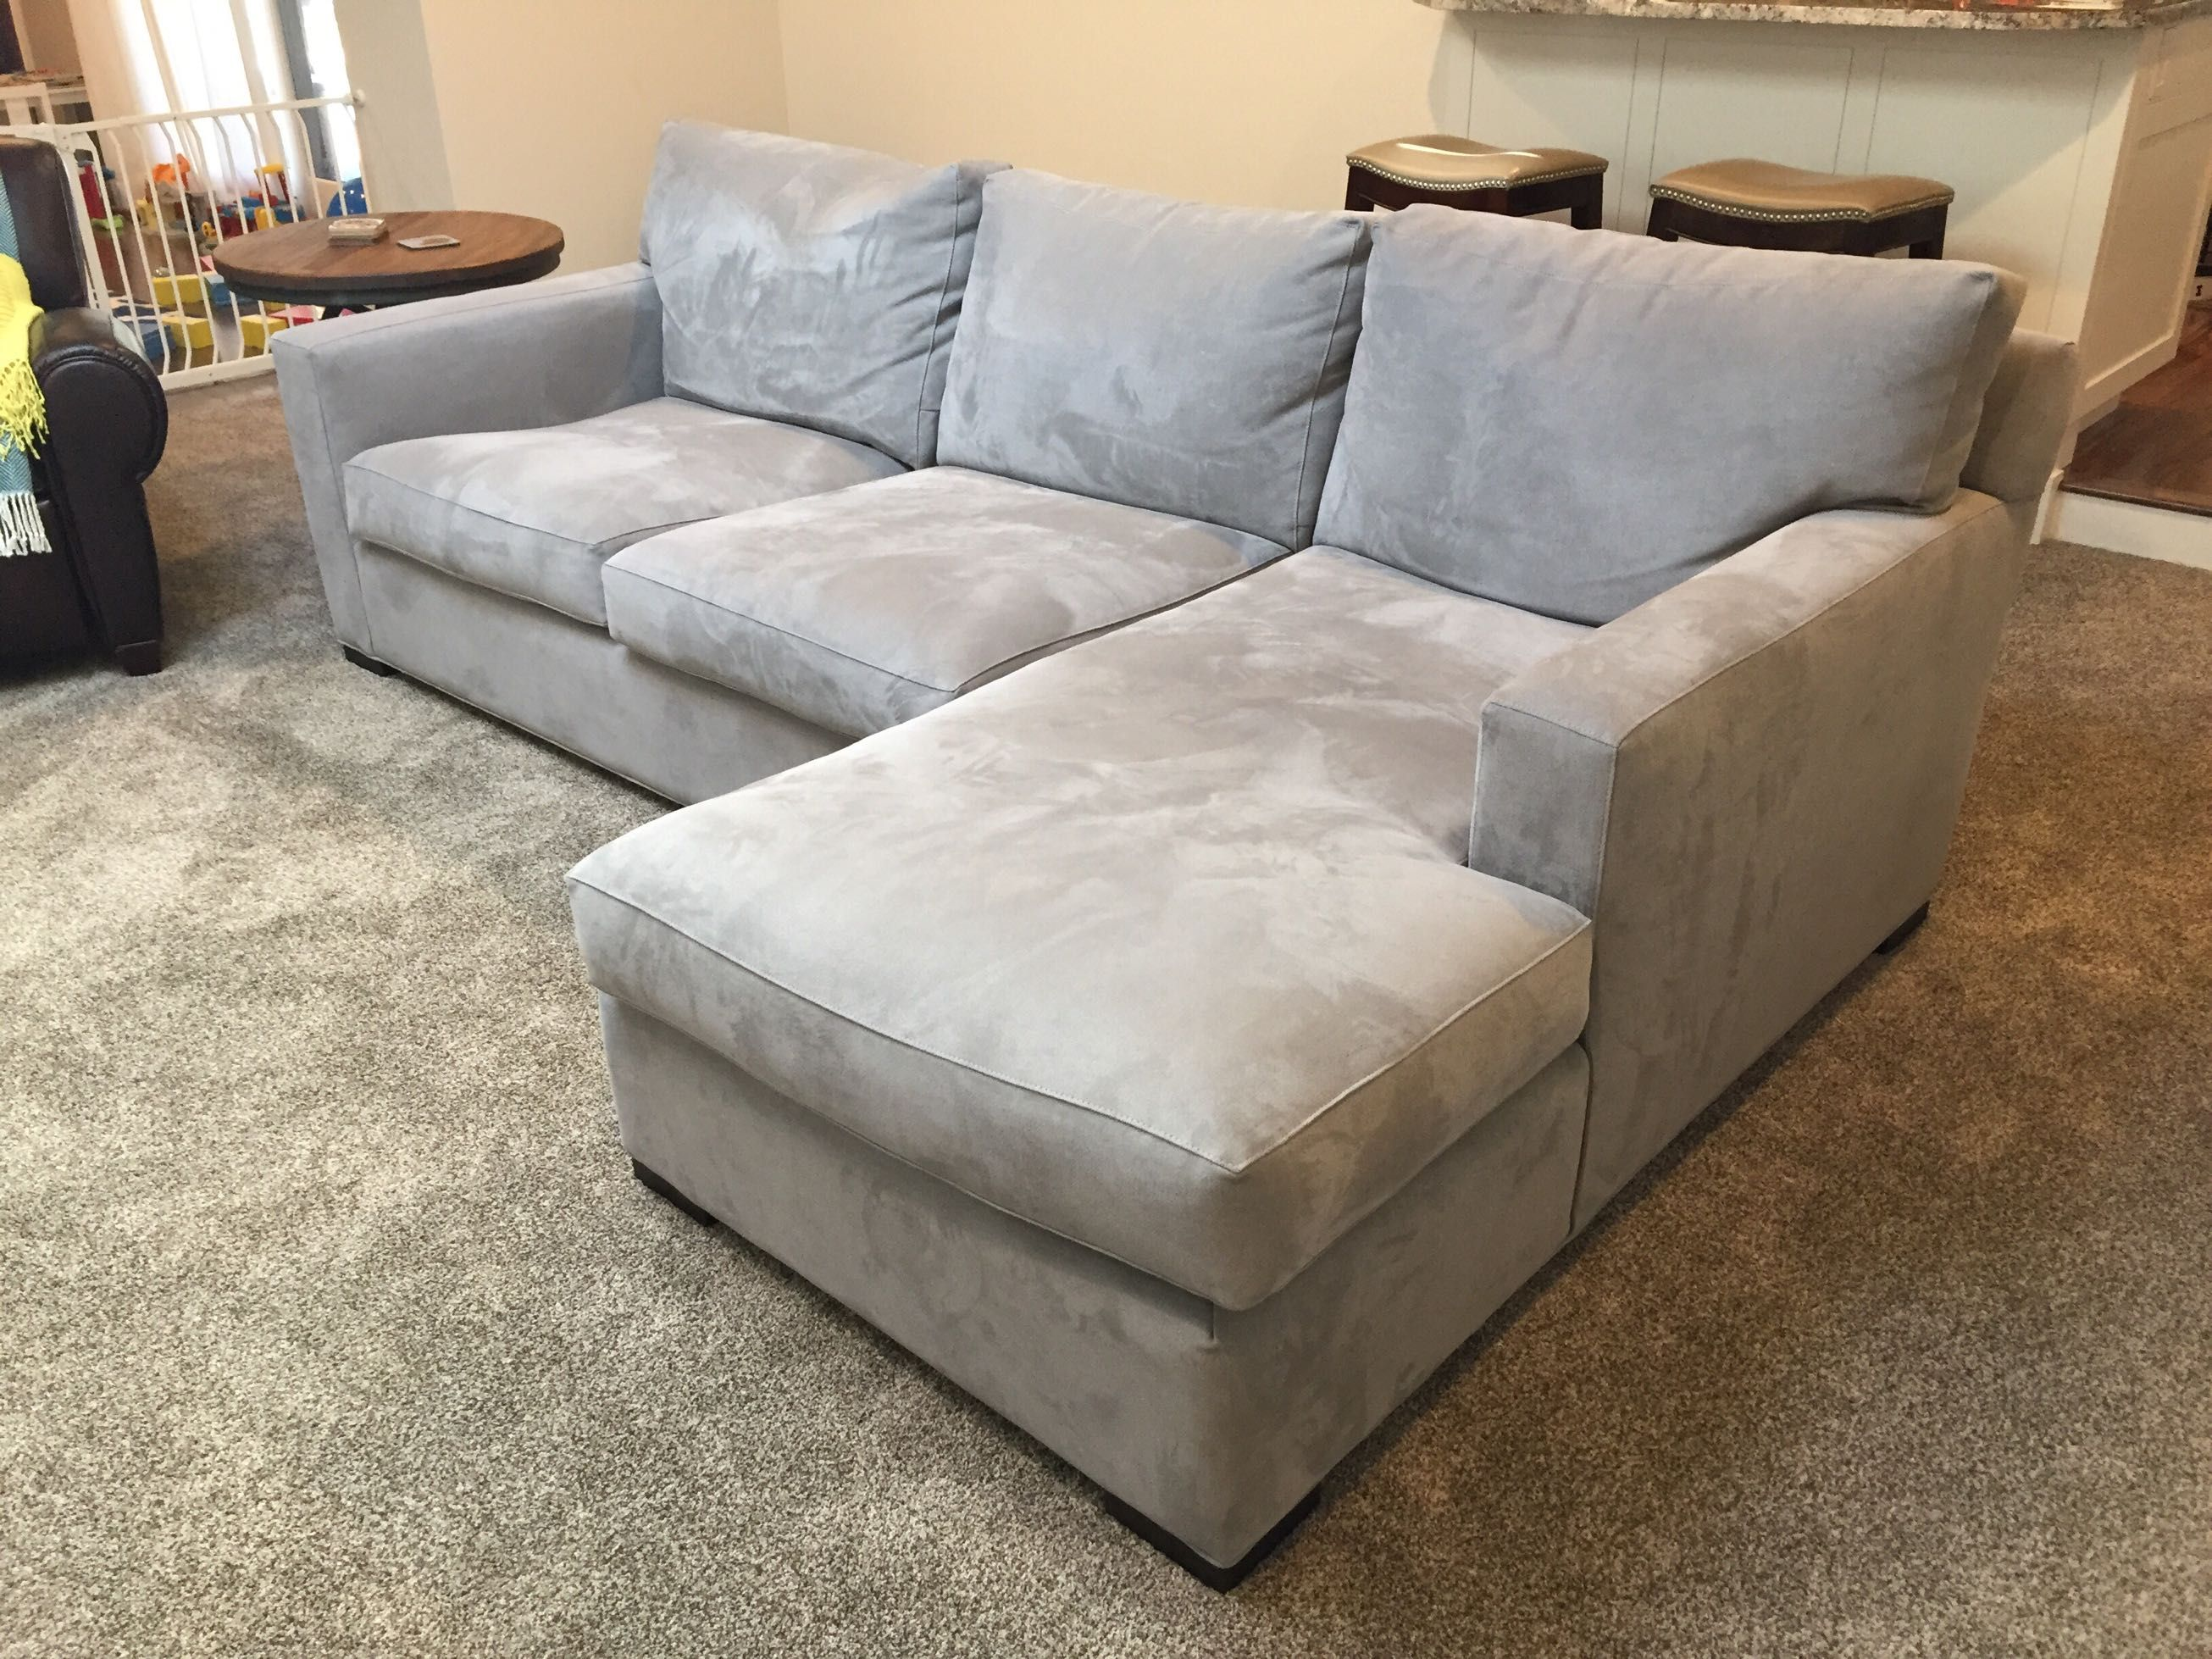 Miraculous Crate Barrel Axis Ii 2 Piece Sectional Sofa In Nickel Inzonedesignstudio Interior Chair Design Inzonedesignstudiocom